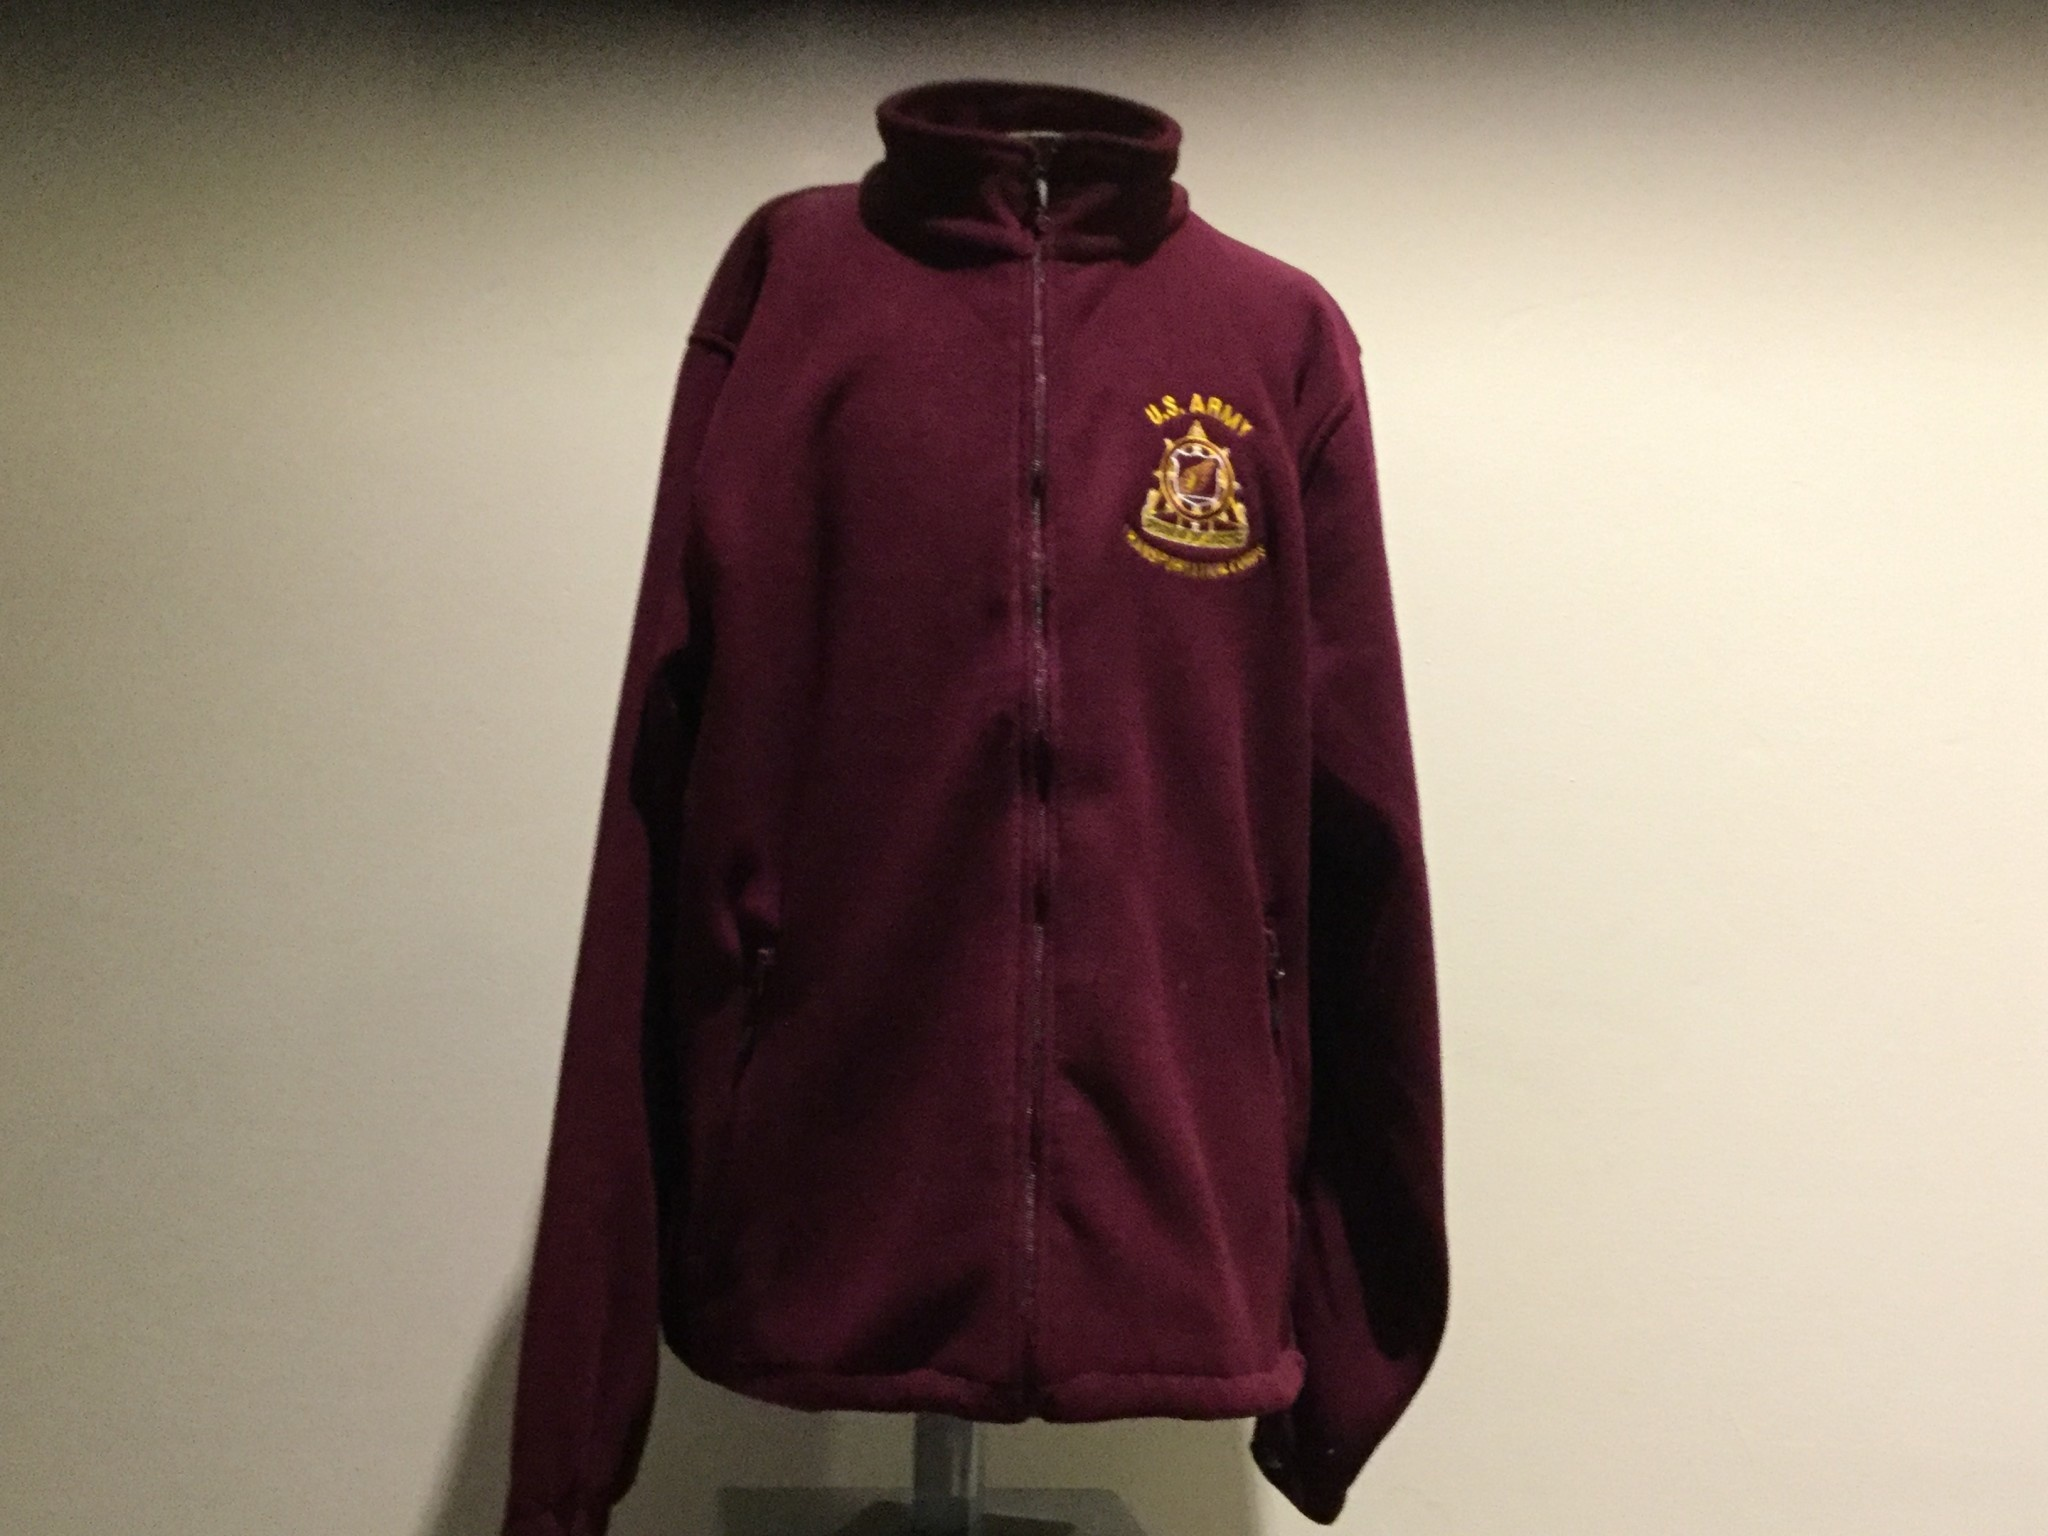 FLEECE, SPEARHEAD, BURGUNDY, 3XL